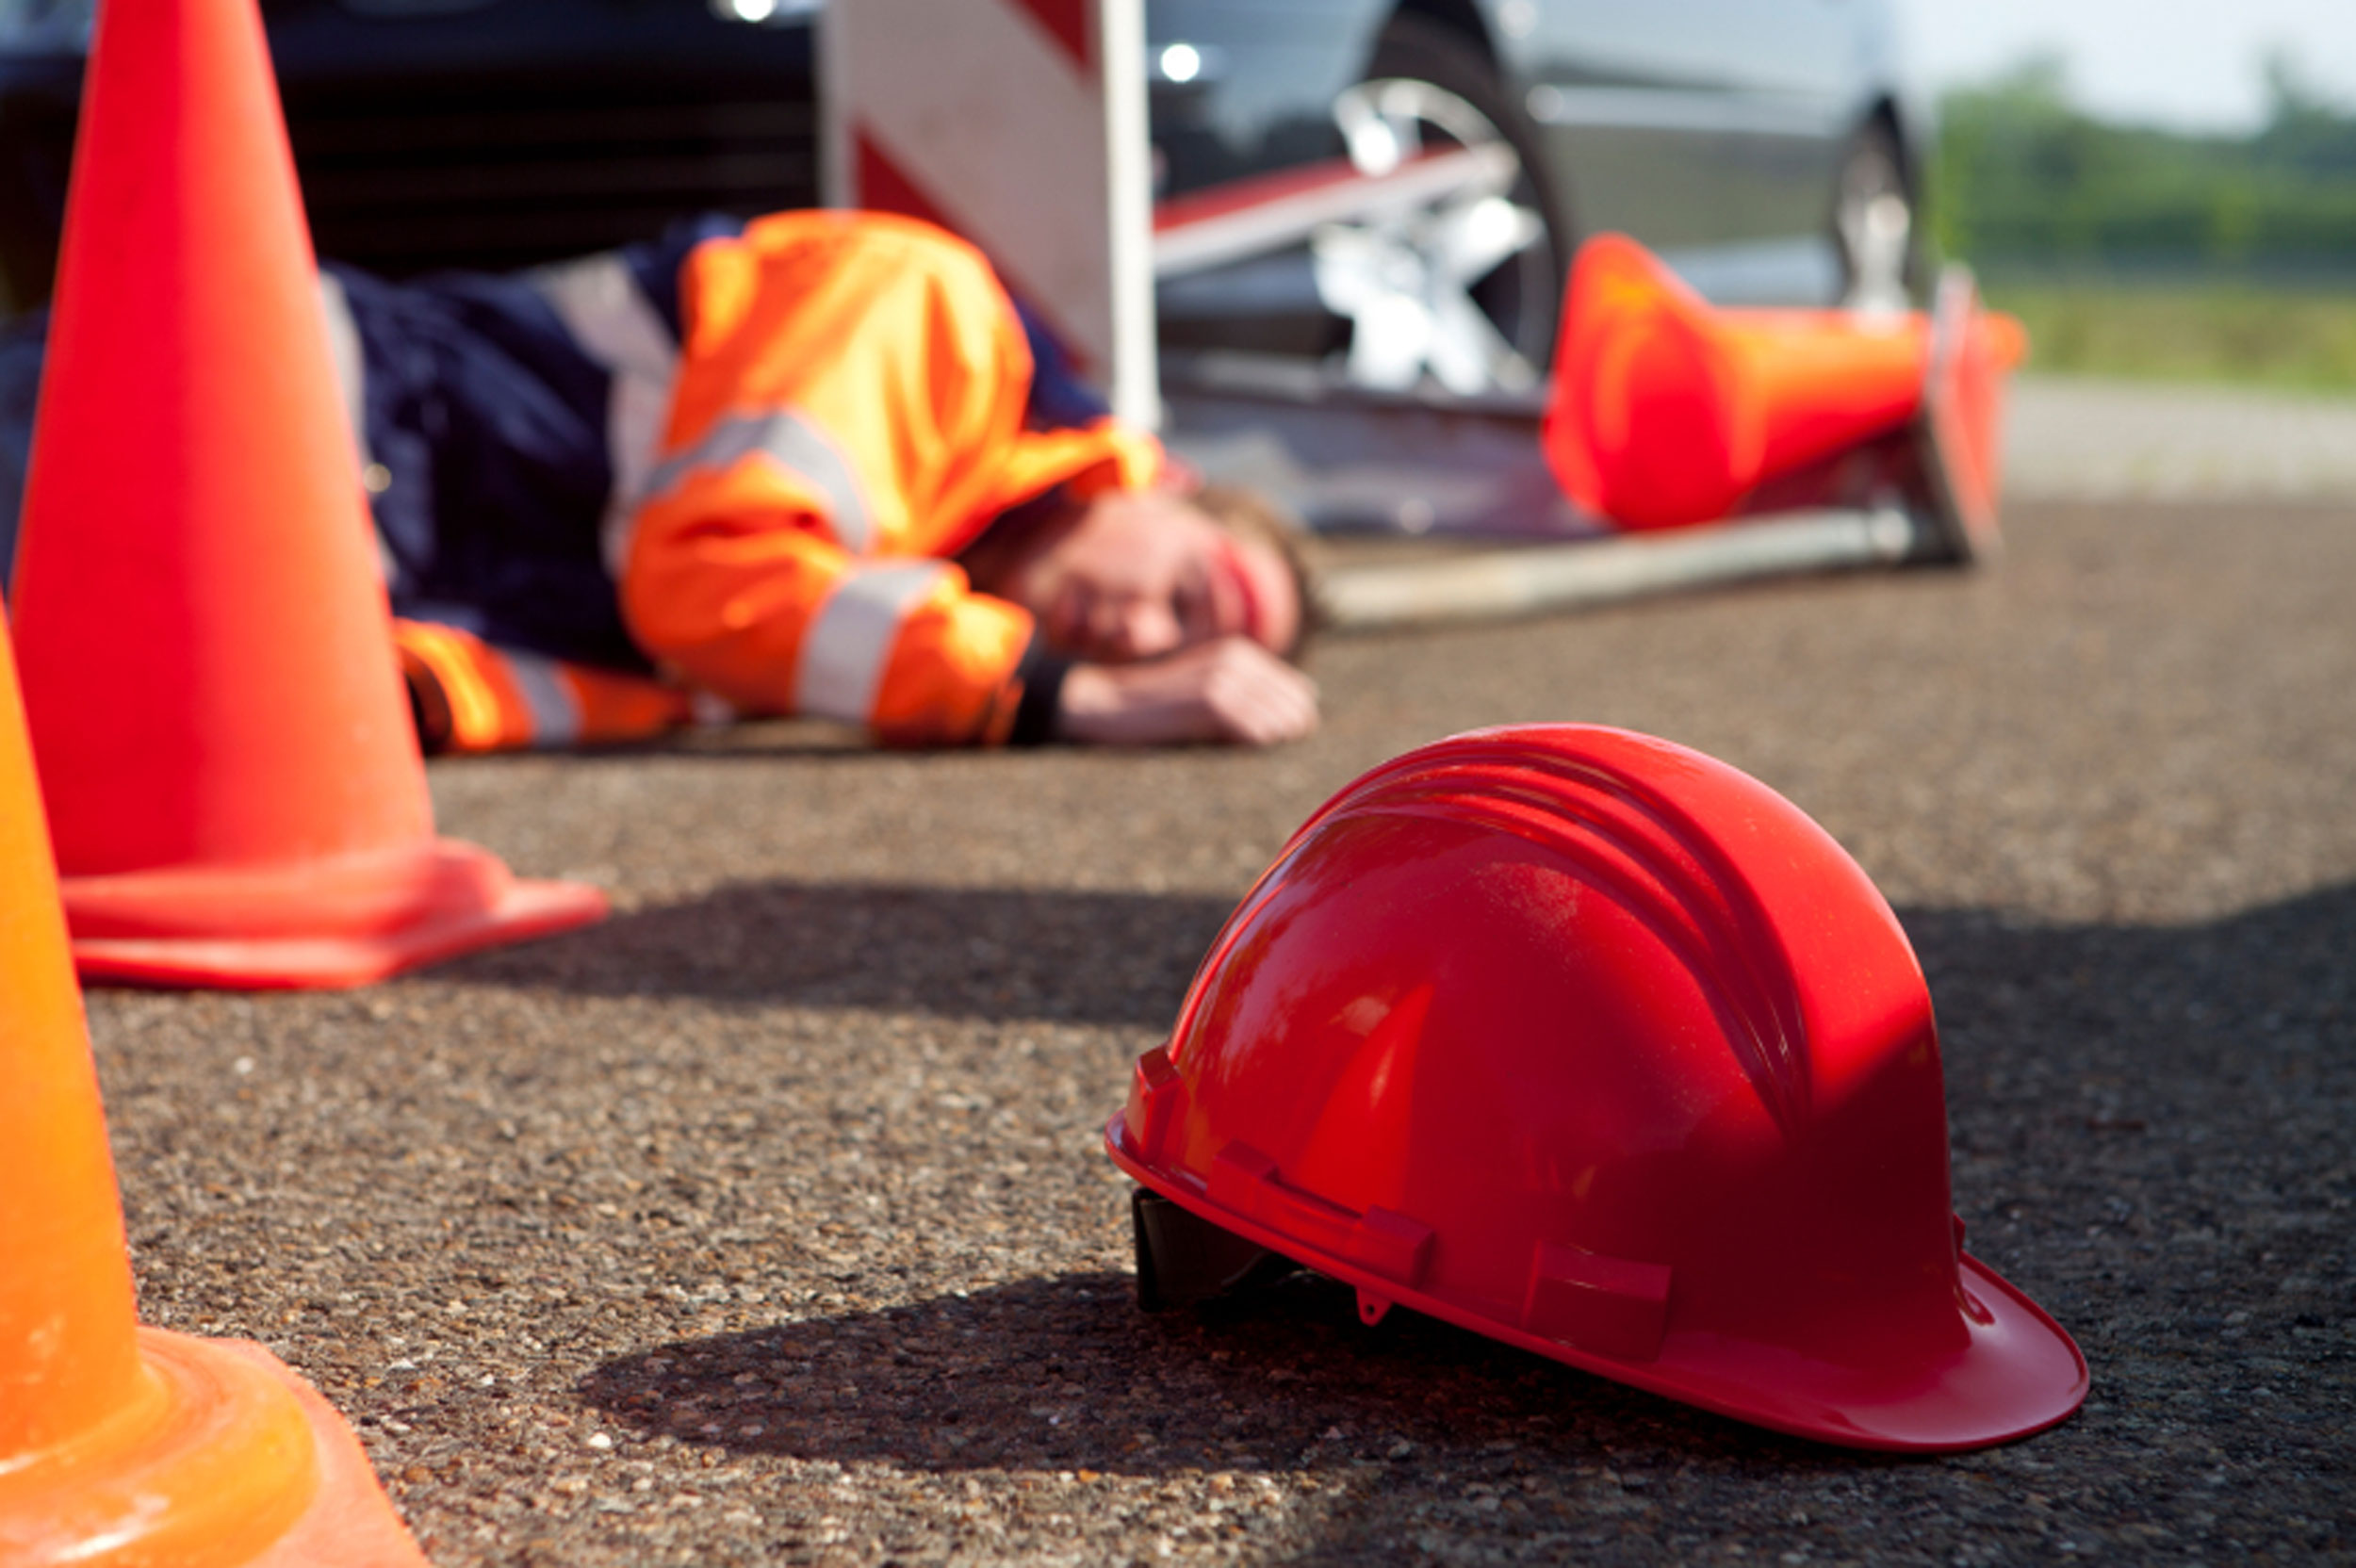 construction worker fell to the ground after injuries worsened by a pre-existing condition